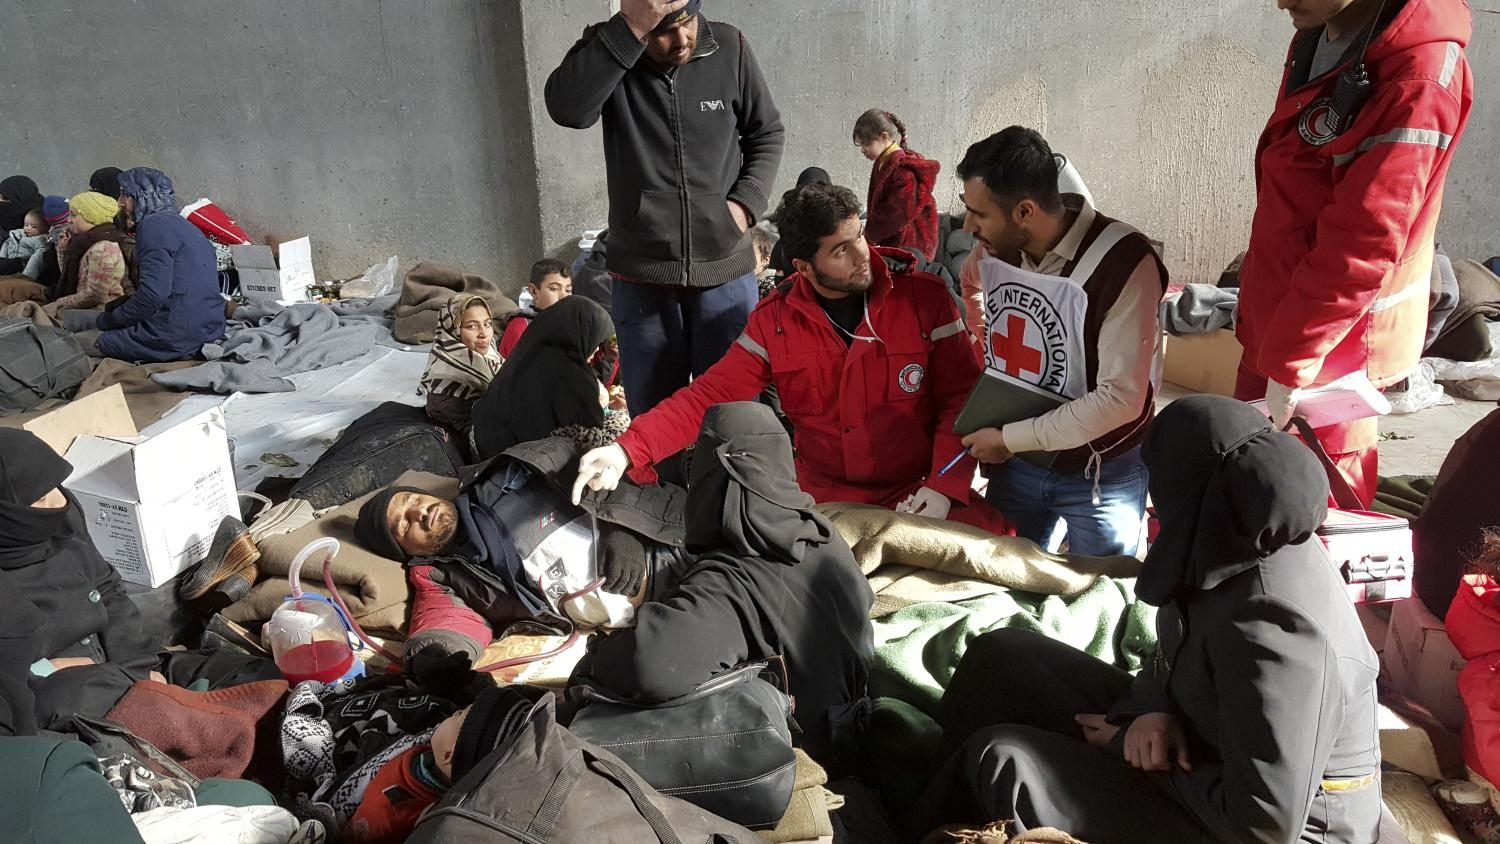 ICRC+and+Syrian+Arab+Red+Crescent+workers+assist+victims+and+assess+their+humanitarian+needs+Southeast+of+the+city+of+Aleppo%2C+Syria.